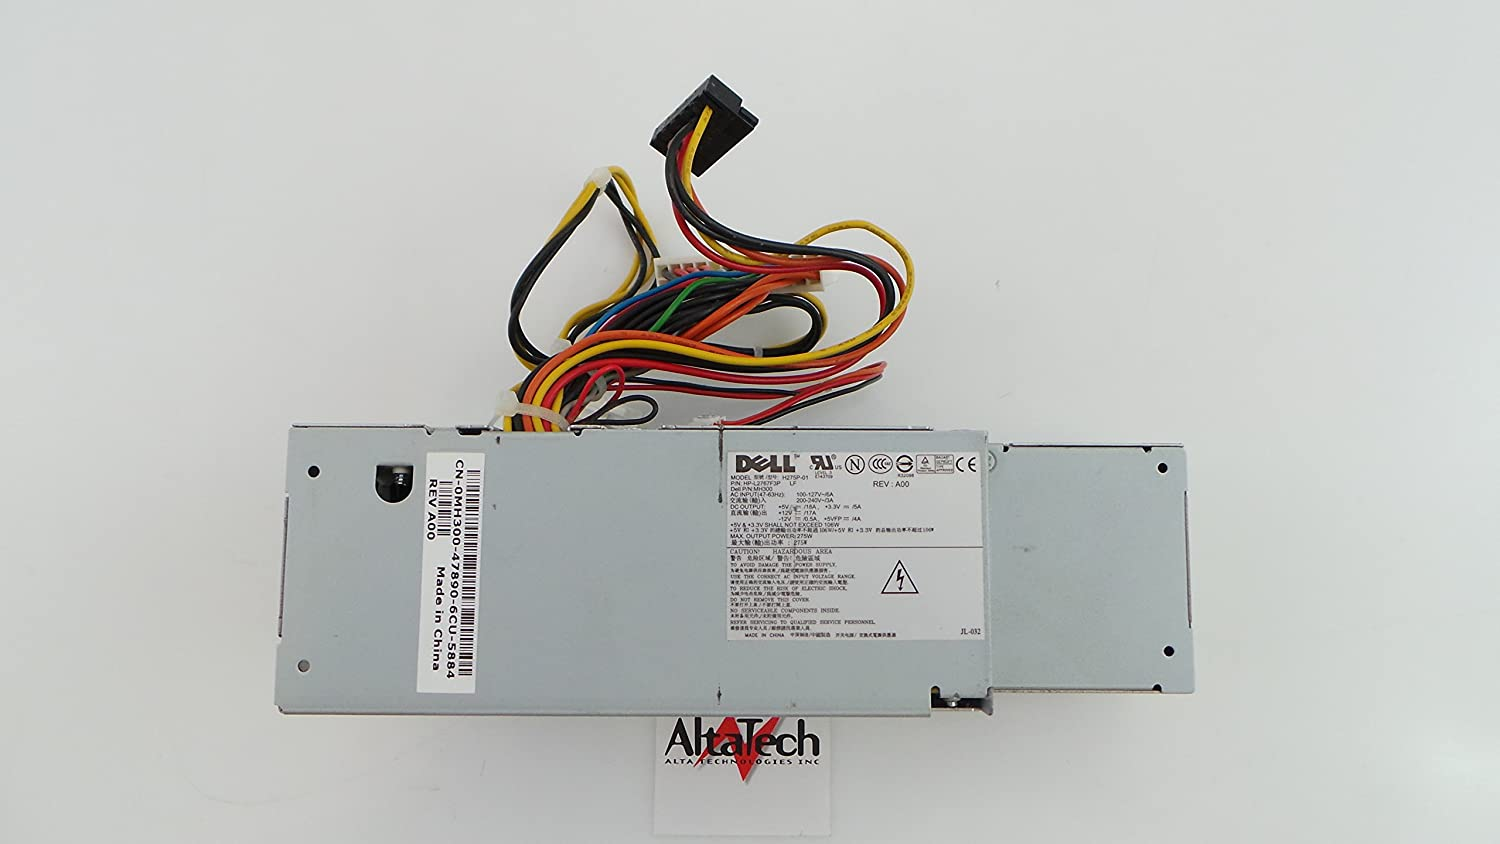 Compaq pc wiring diagram wiring diagram dell computer hookup diagram dell power supply color wiring diagram 2 9 stefvandenheuvel nl \\u2022dell wiring colors 17 2